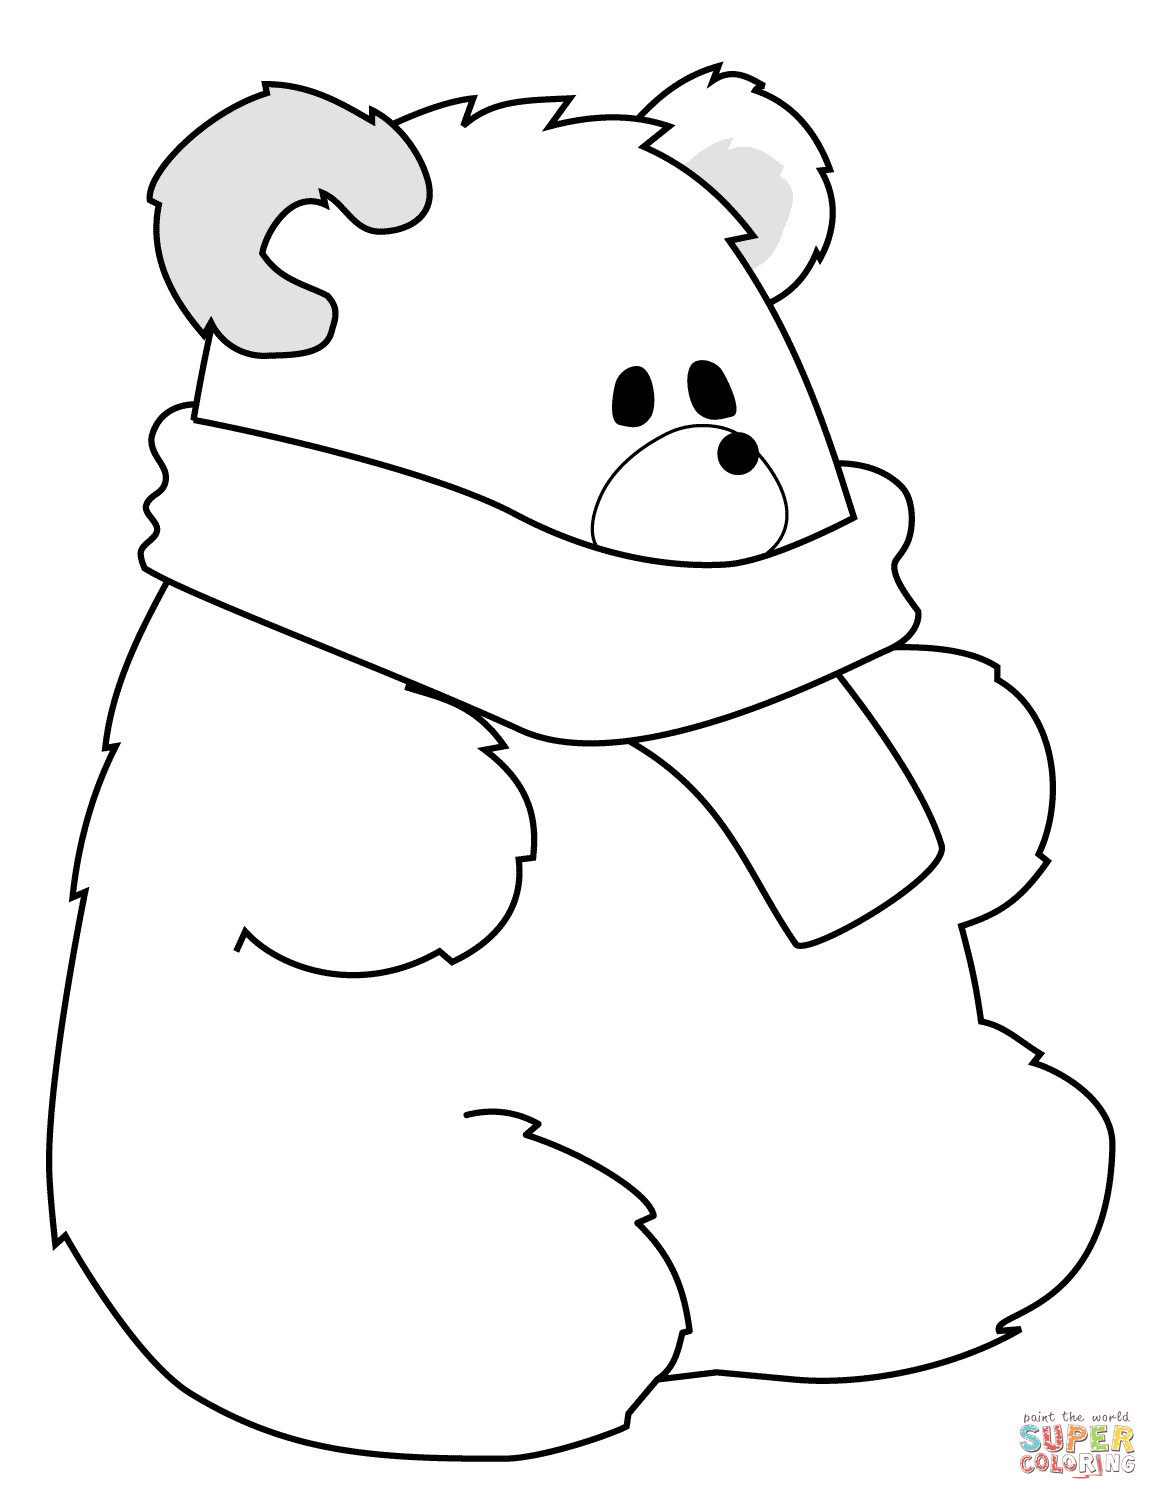 Polar Express Color Pages Polar Bear Coloring Page Coloring Pages For Children